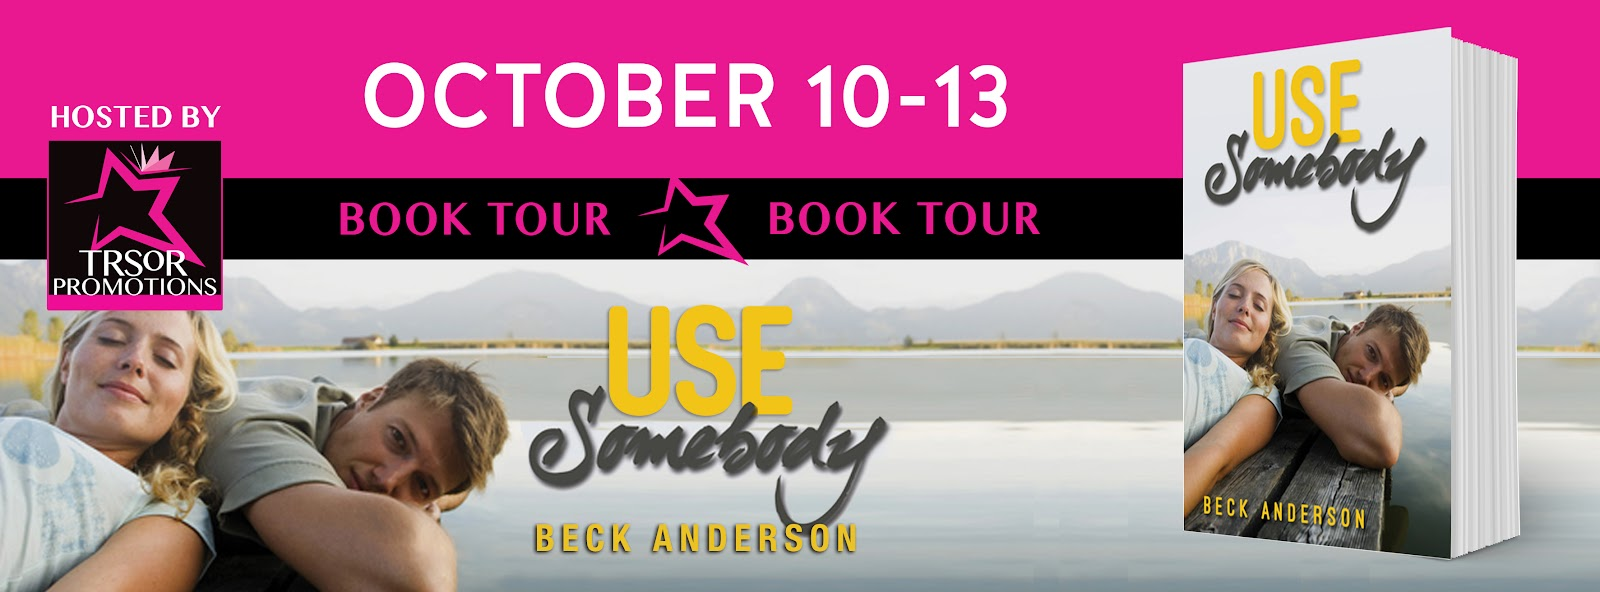 USE_SOMEBODY_BOOK_TOUR.jpg